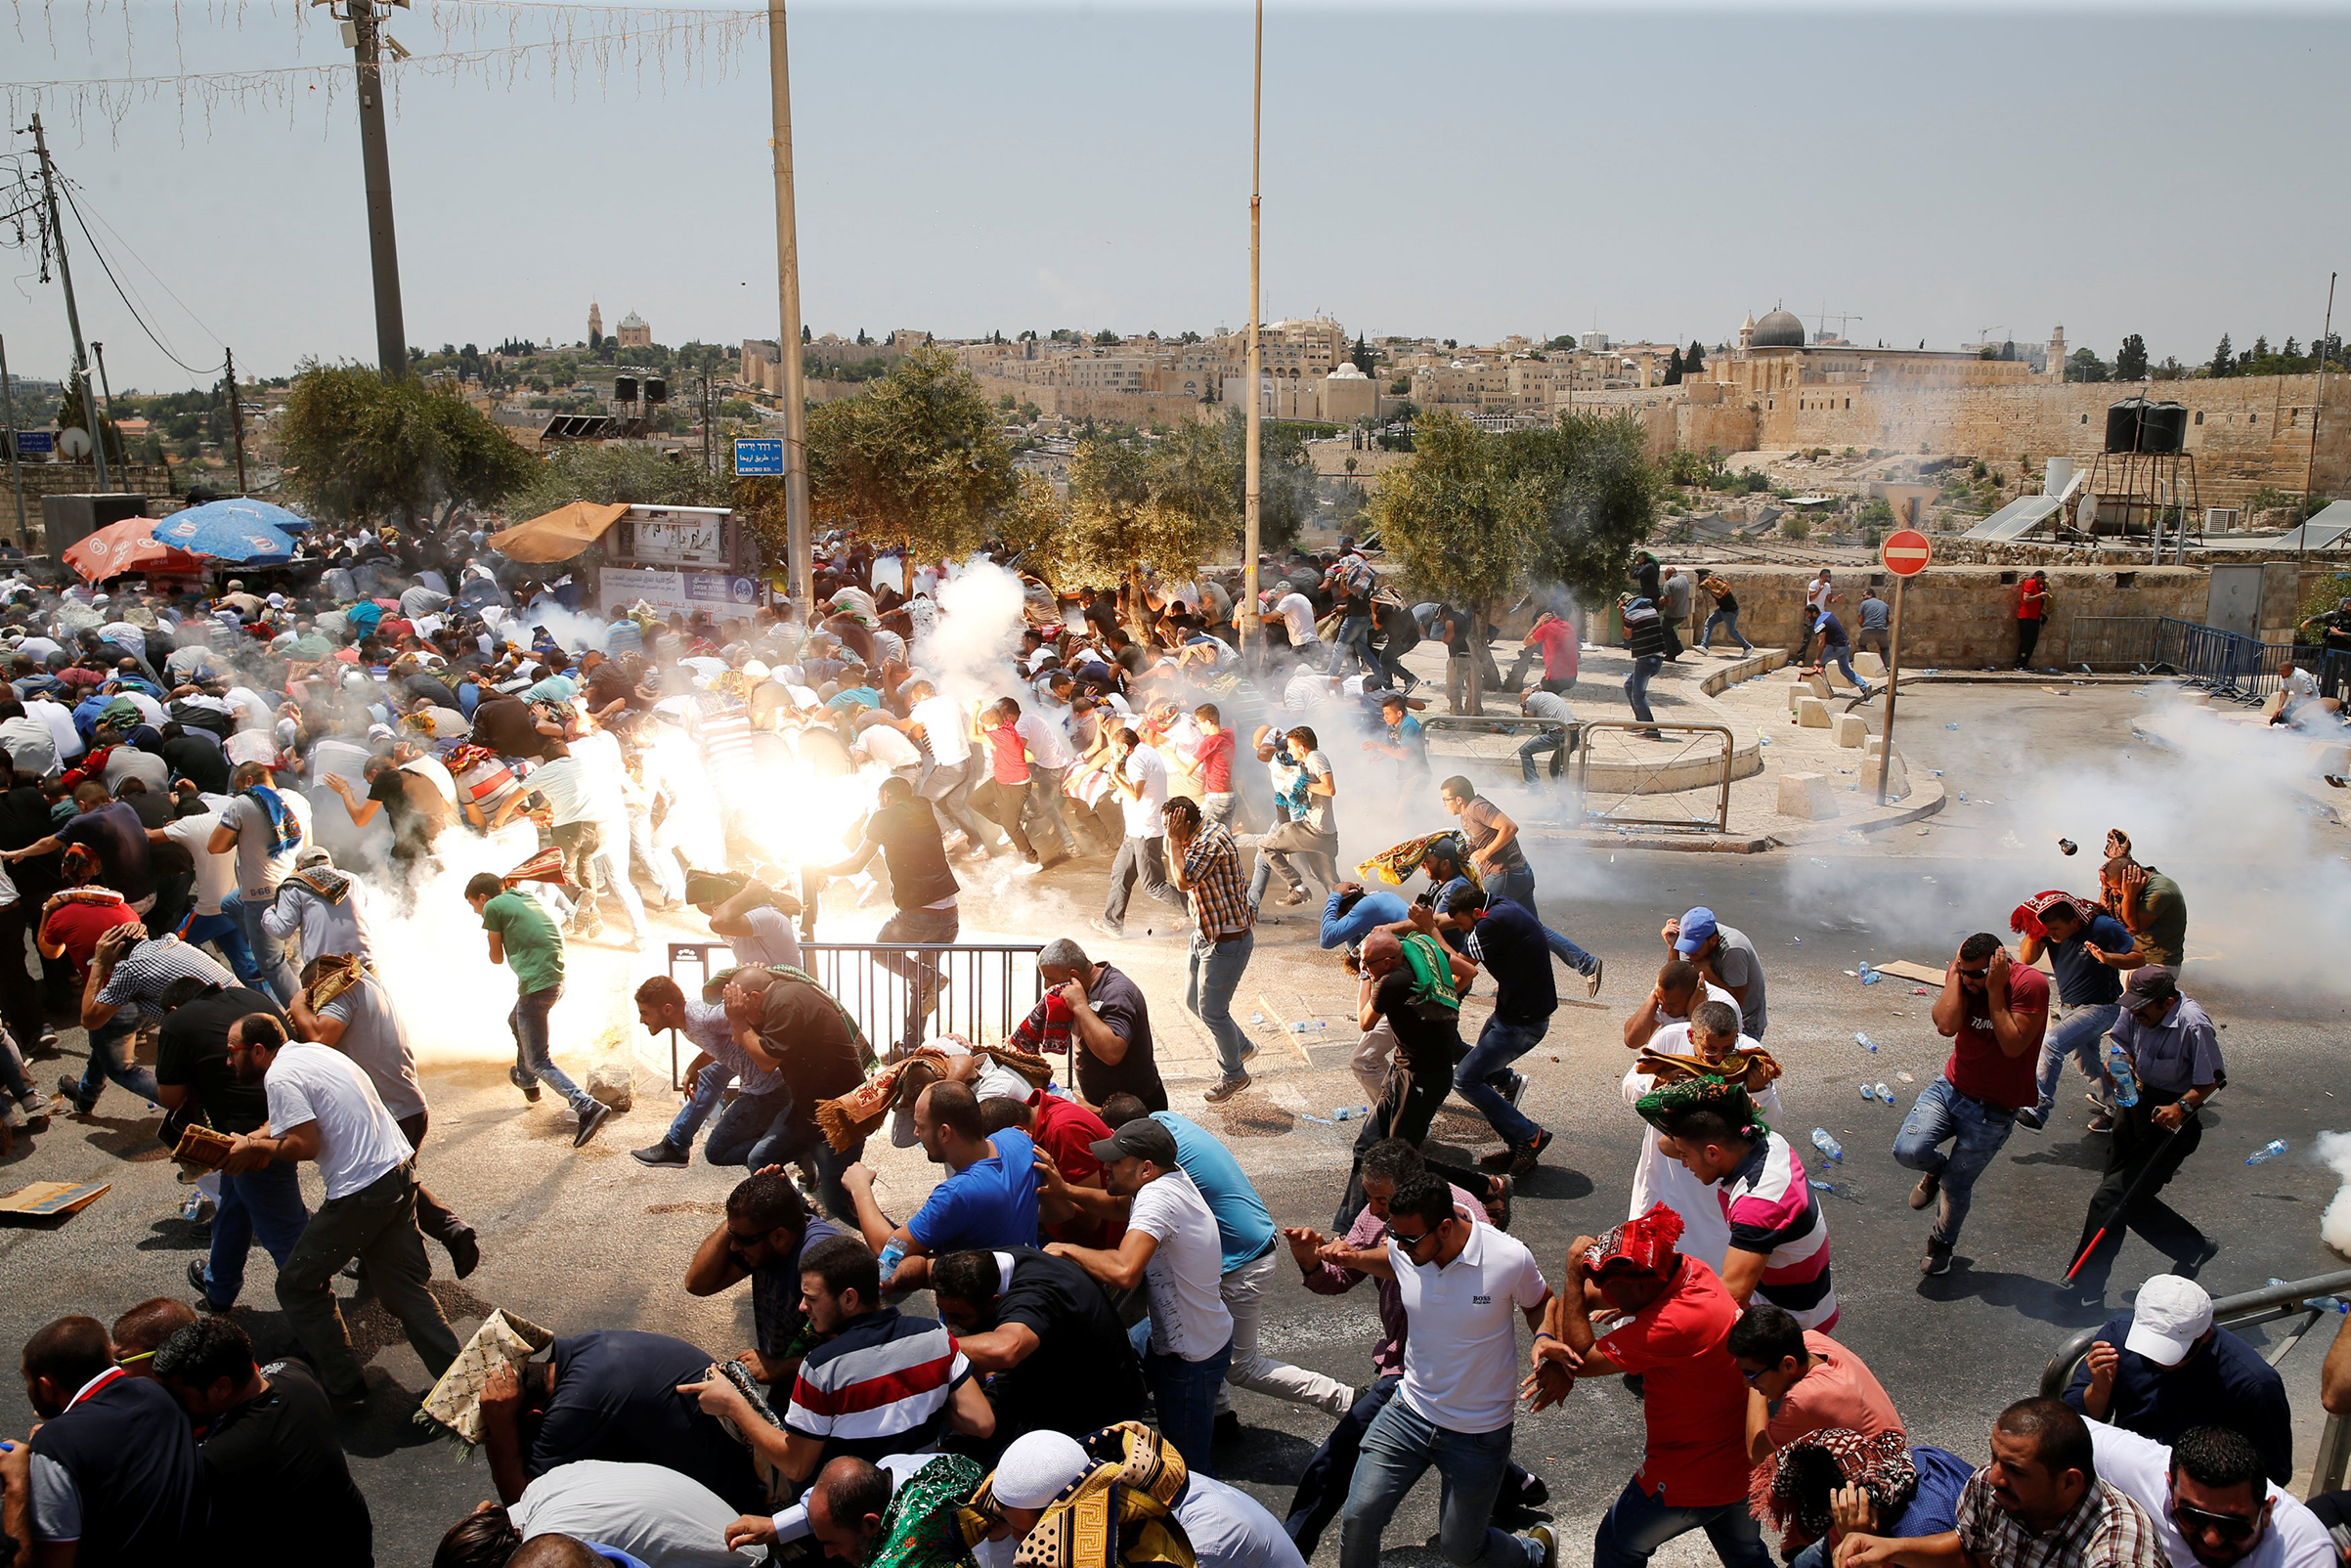 Palestinians react after tear gas was shot by Israeli forces after Friday prayers on a street outside Jerusalem's Old City on July 21, 2017.